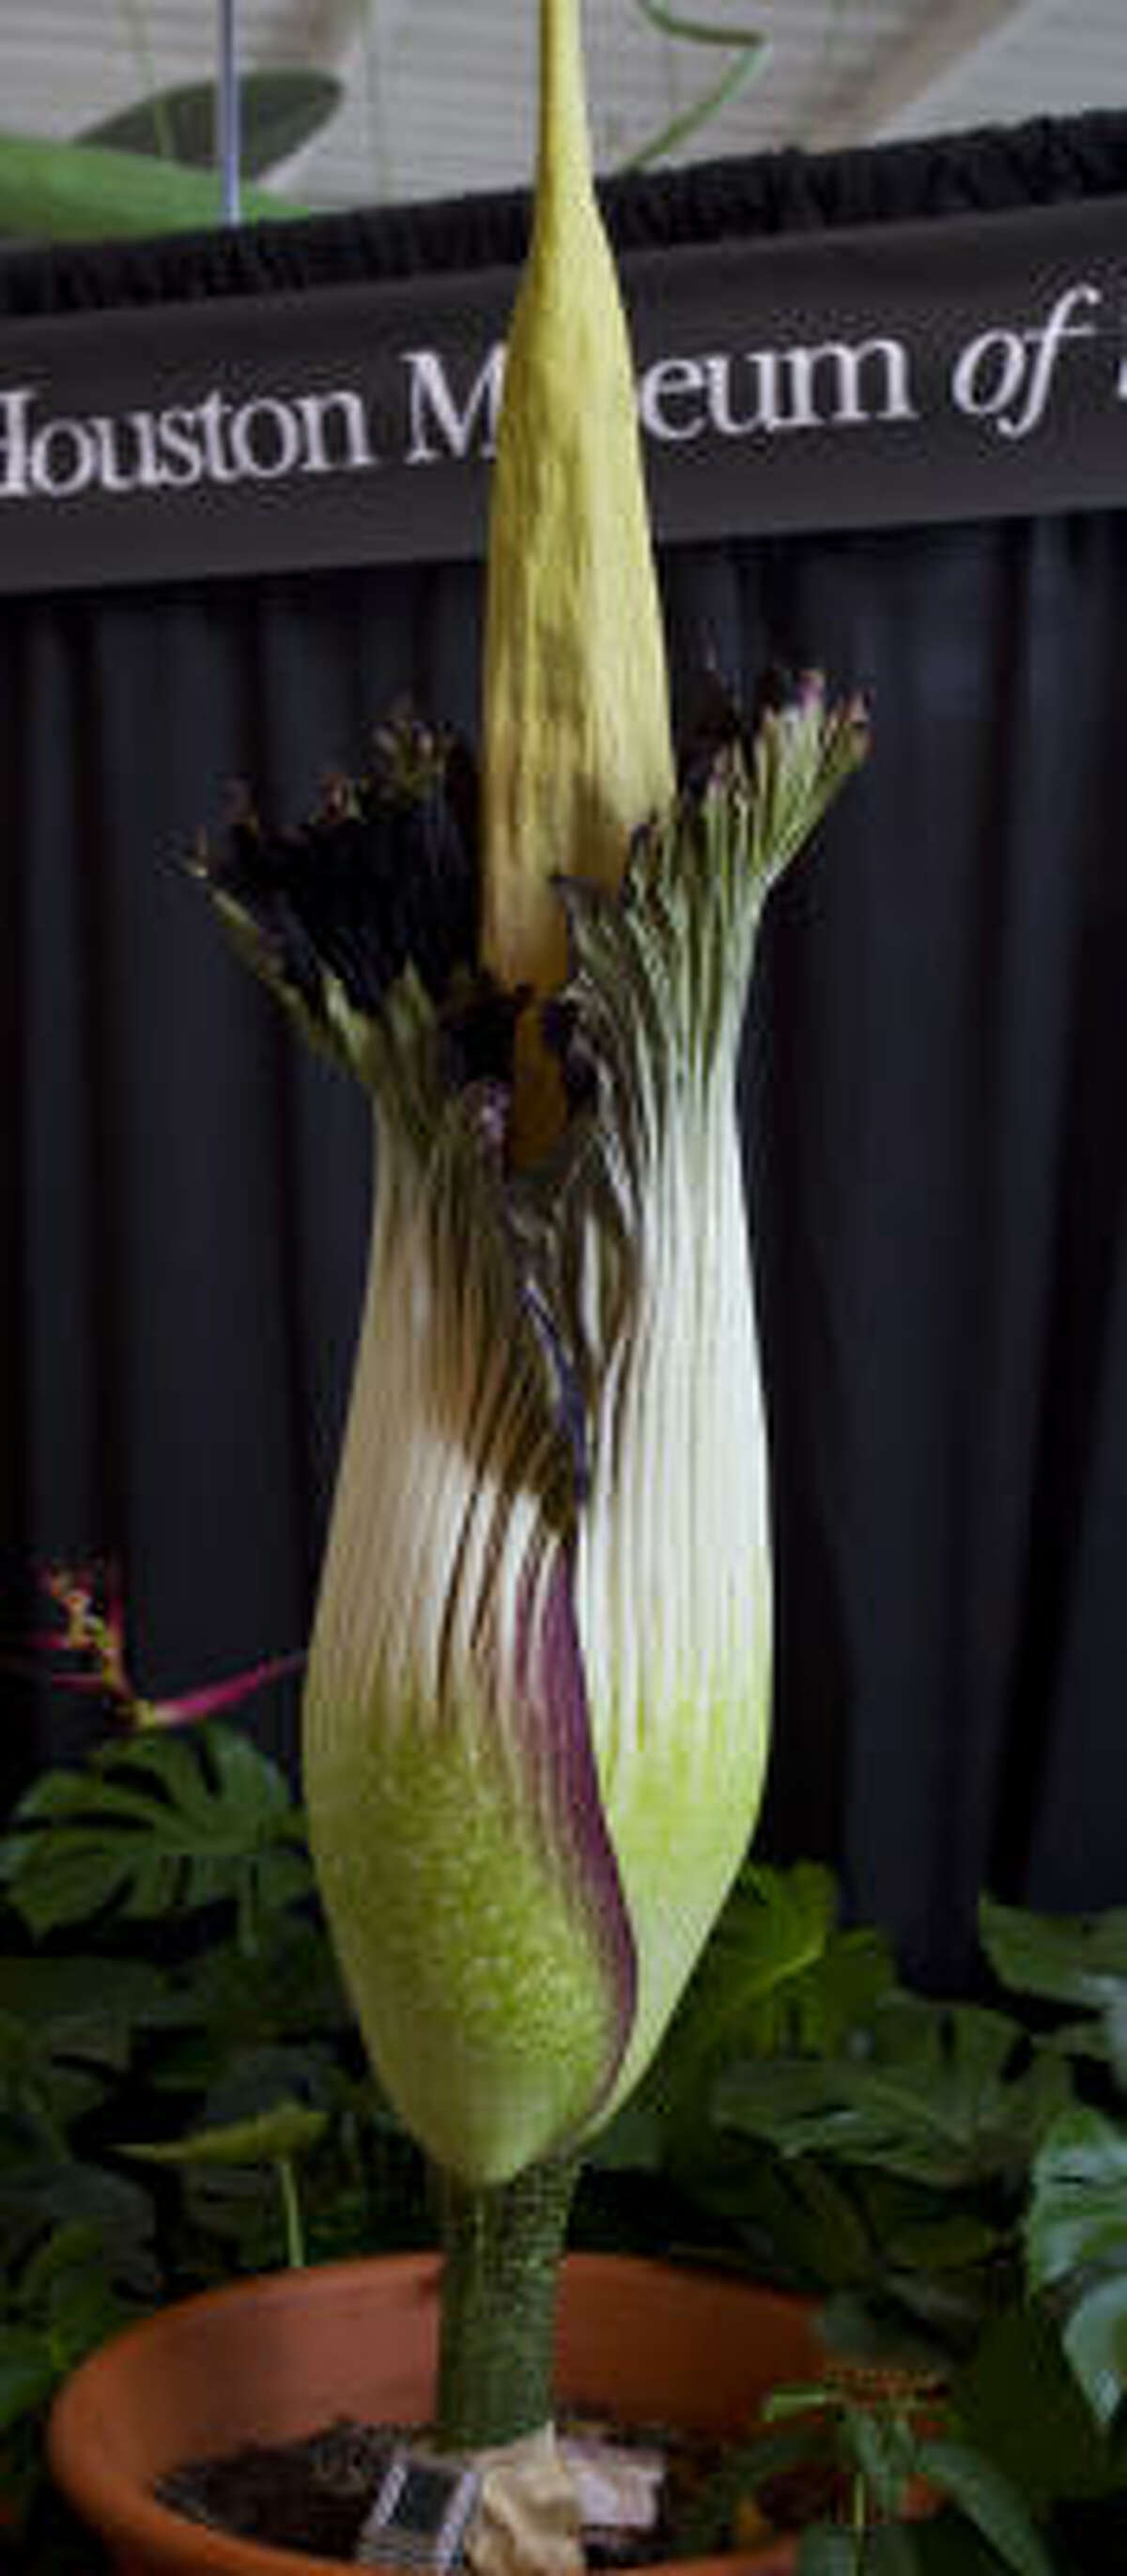 She took her time, but the corpse flower is showing her true odors. She is expected to be fully bloomed today.